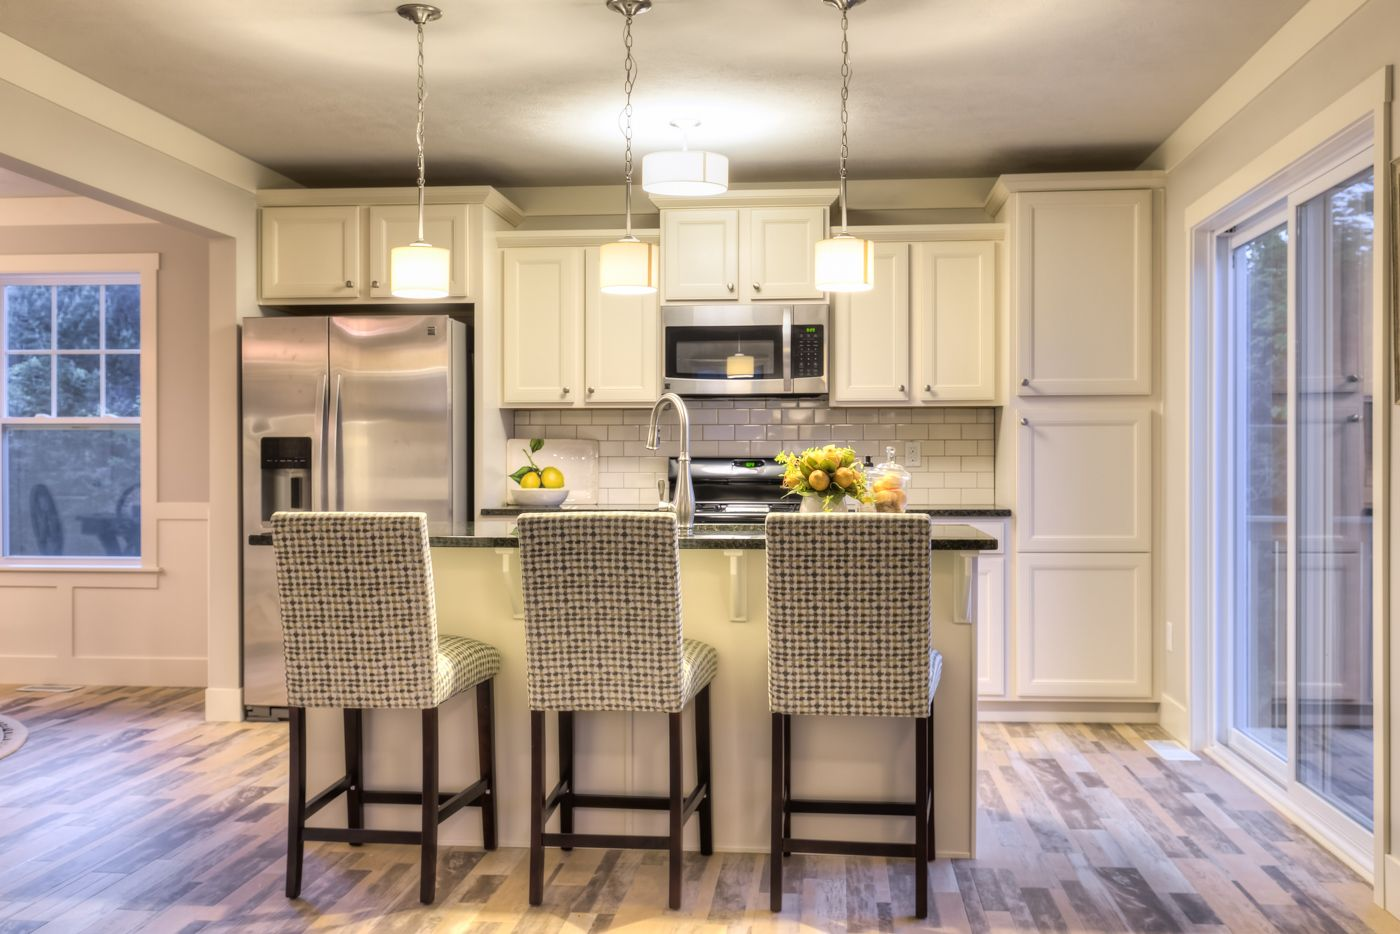 Kitchen featured in the Elements 2200 By Allen Edwin Homes in South Bend, IN